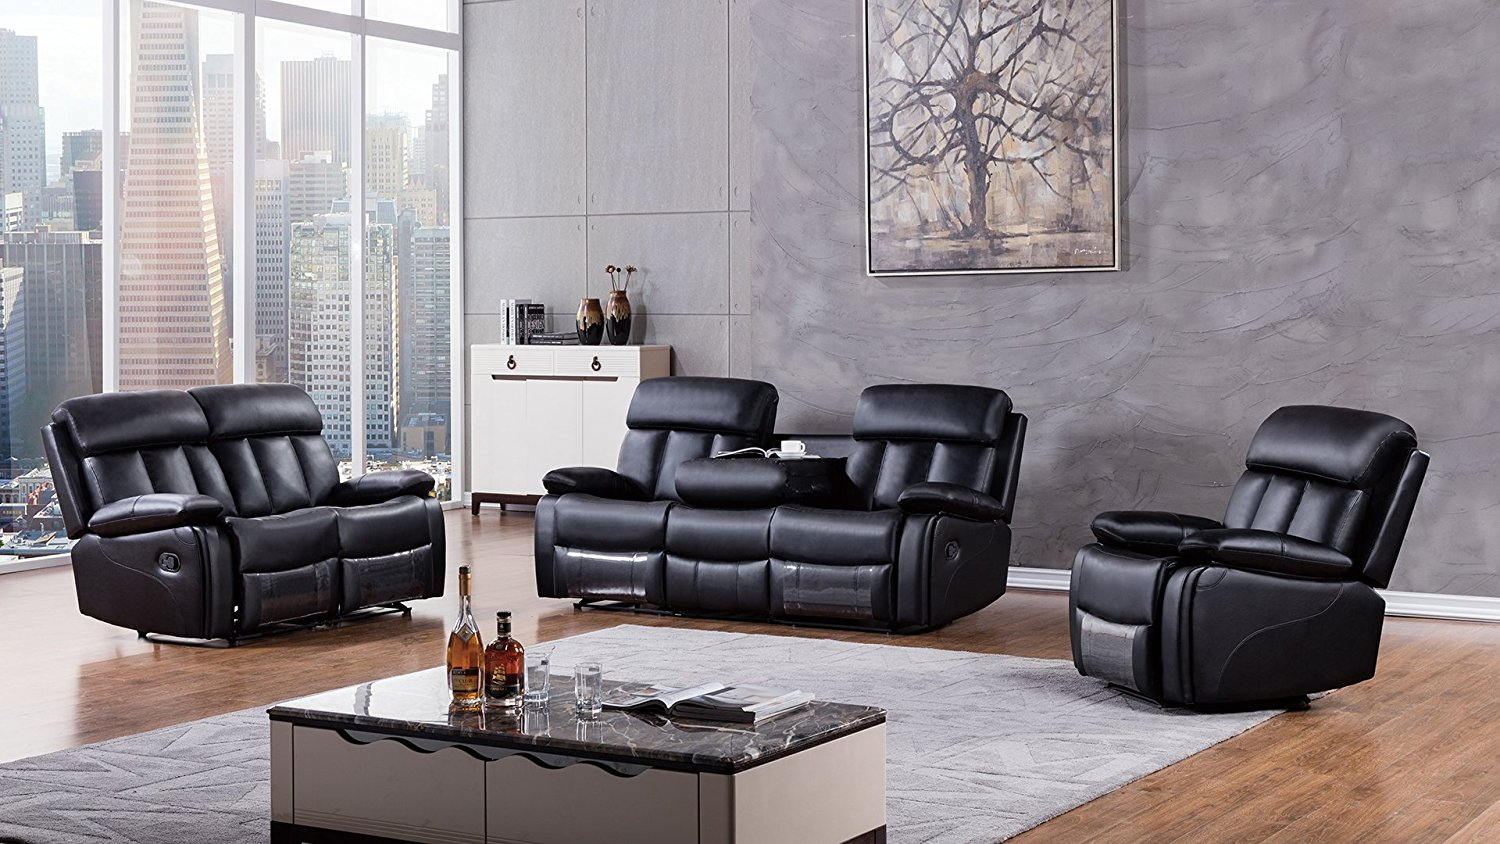 Furniture 3 Piece Dunbar Collection Complete Faux Leather Reclining Living Room Sofa Set, Black